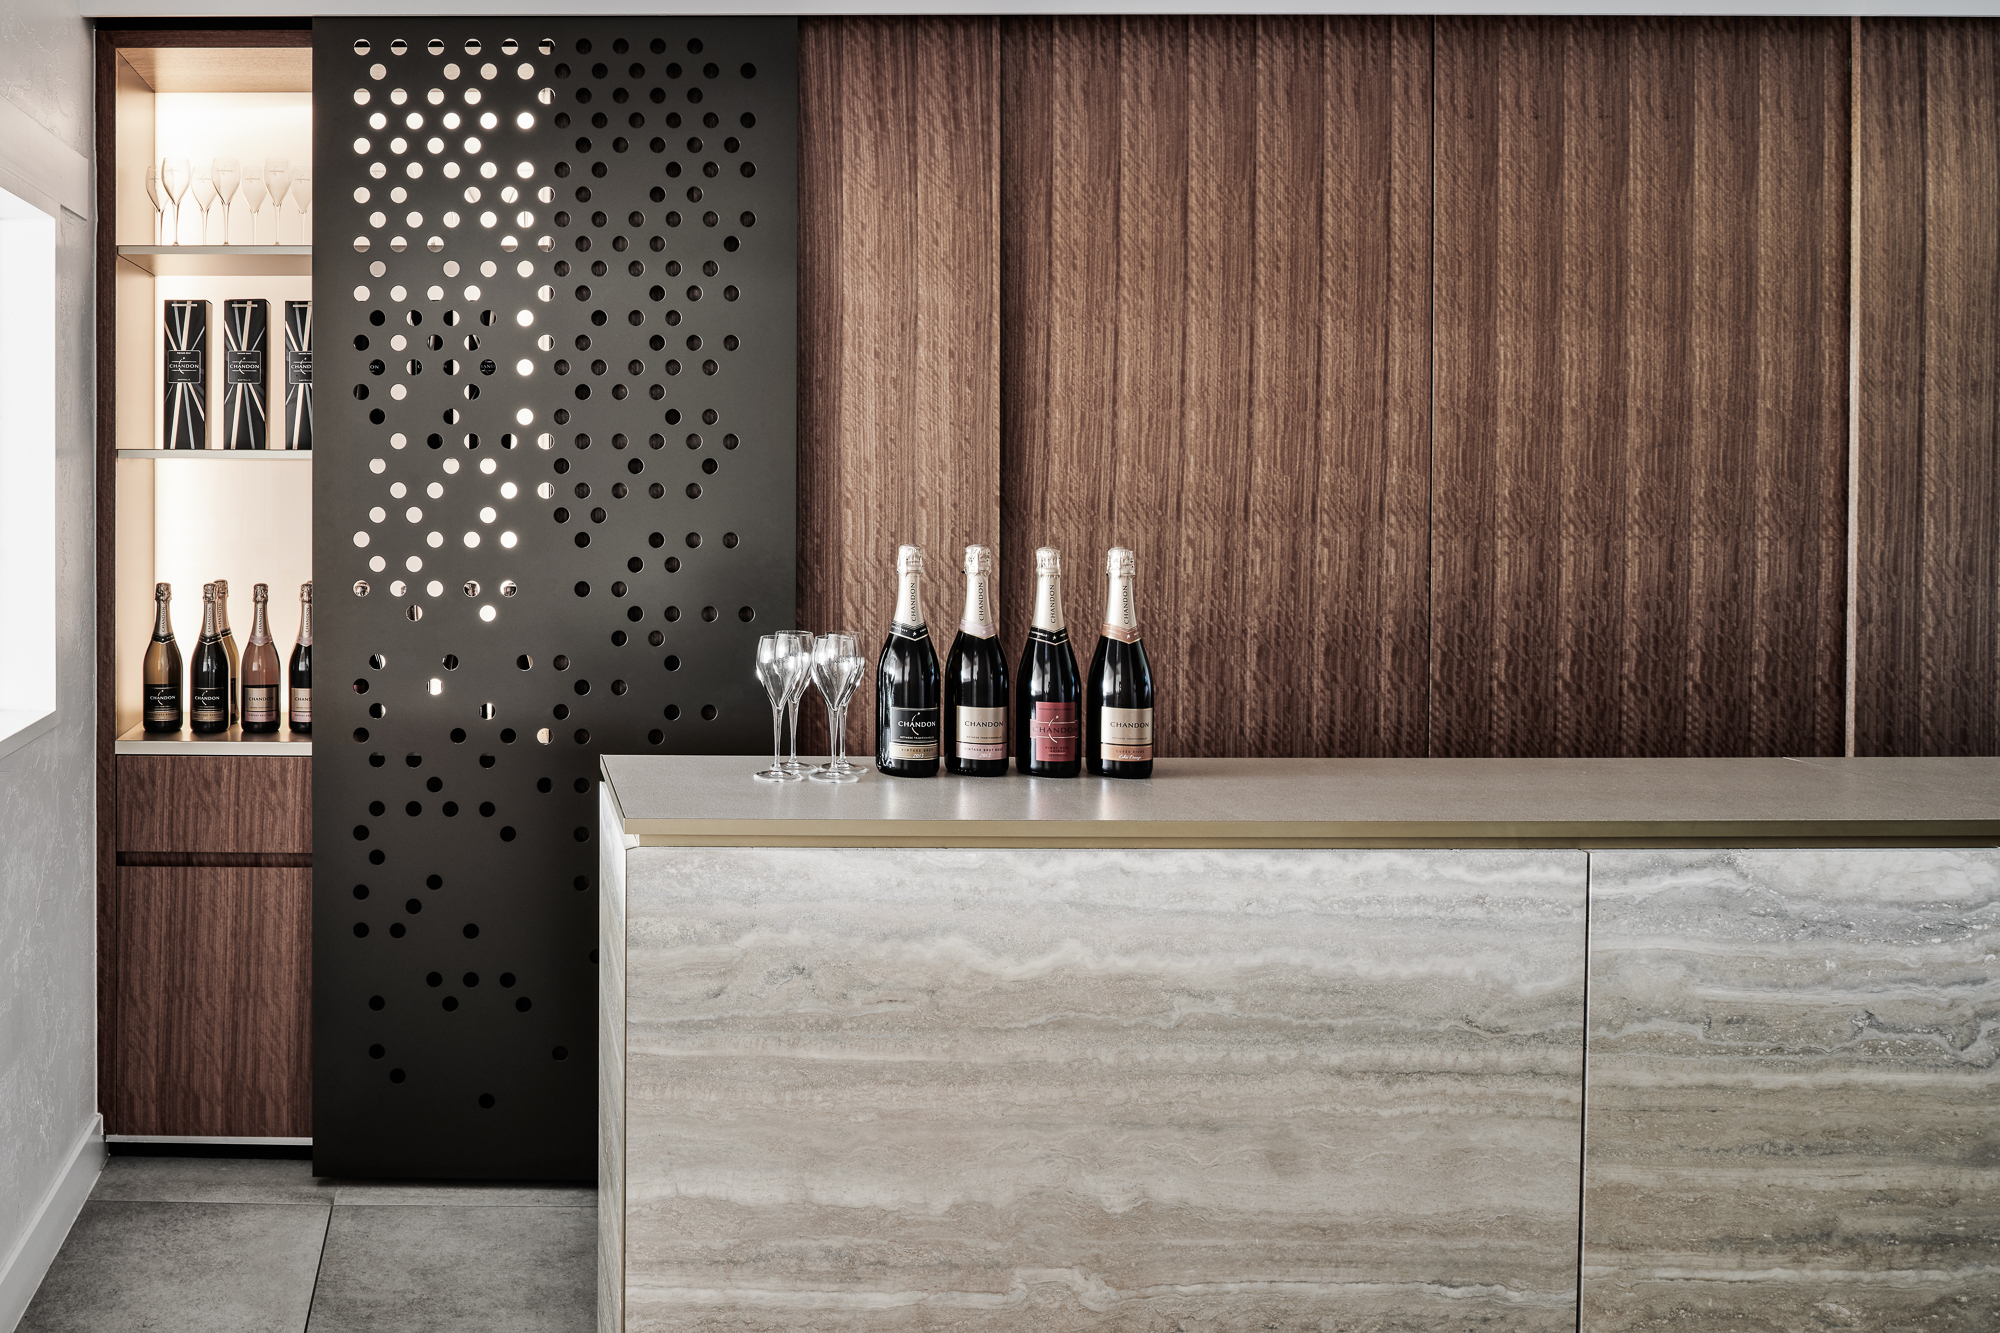 Gallery Of Chandon Australia By Foolscap Studio Local Australian Design And Interiors Yarra Valley, Vic Image 2